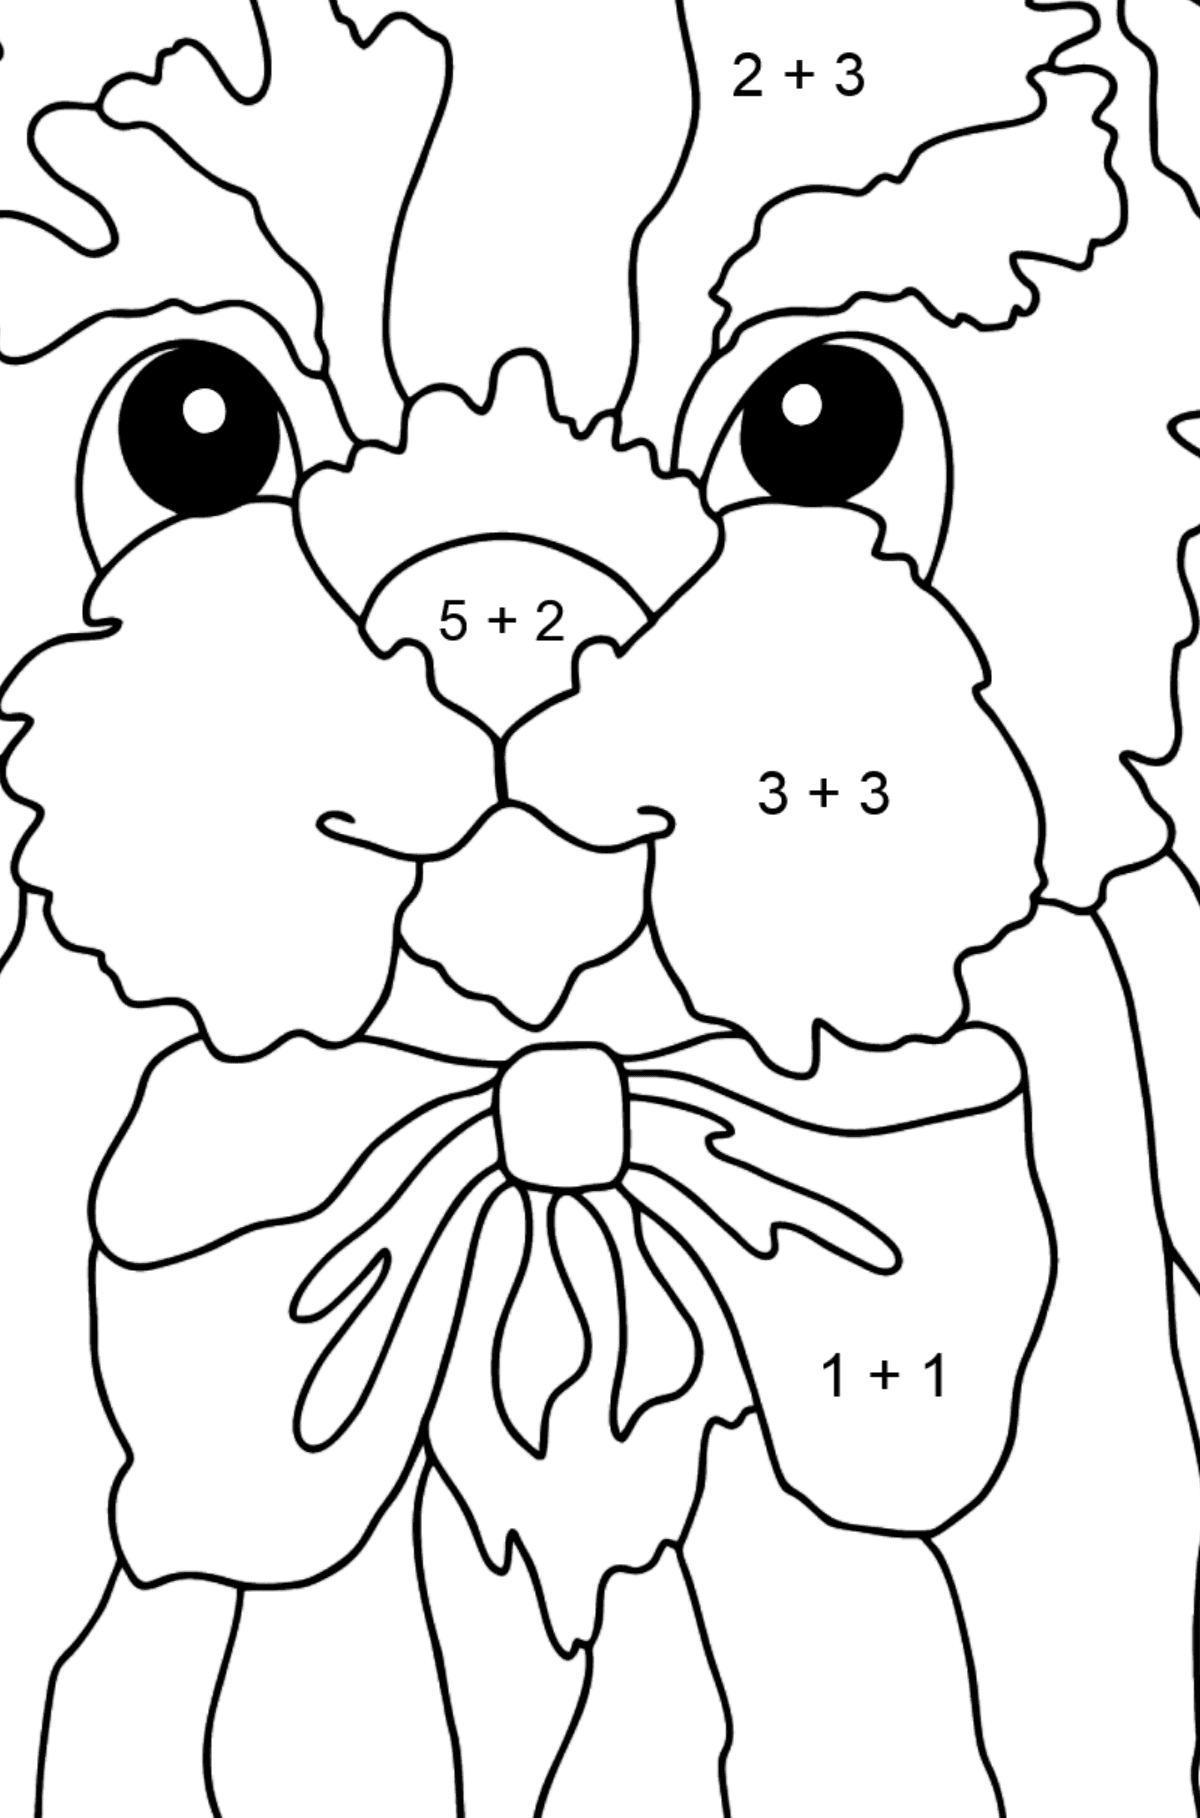 Coloring Page - A Young Fluffy Dog - Math Coloring - Addition for Kids